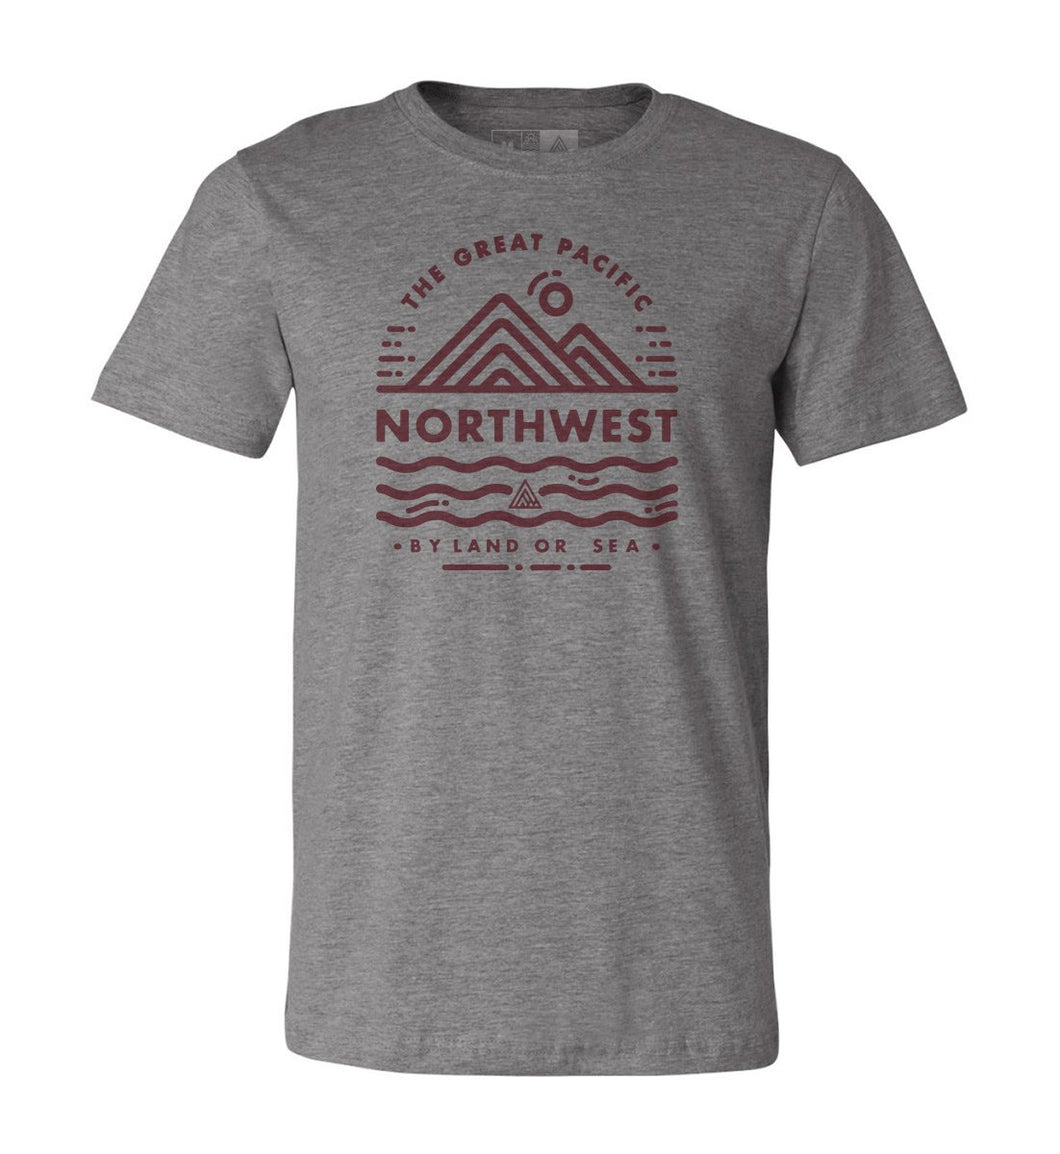 Great PNW Eclipse Tee